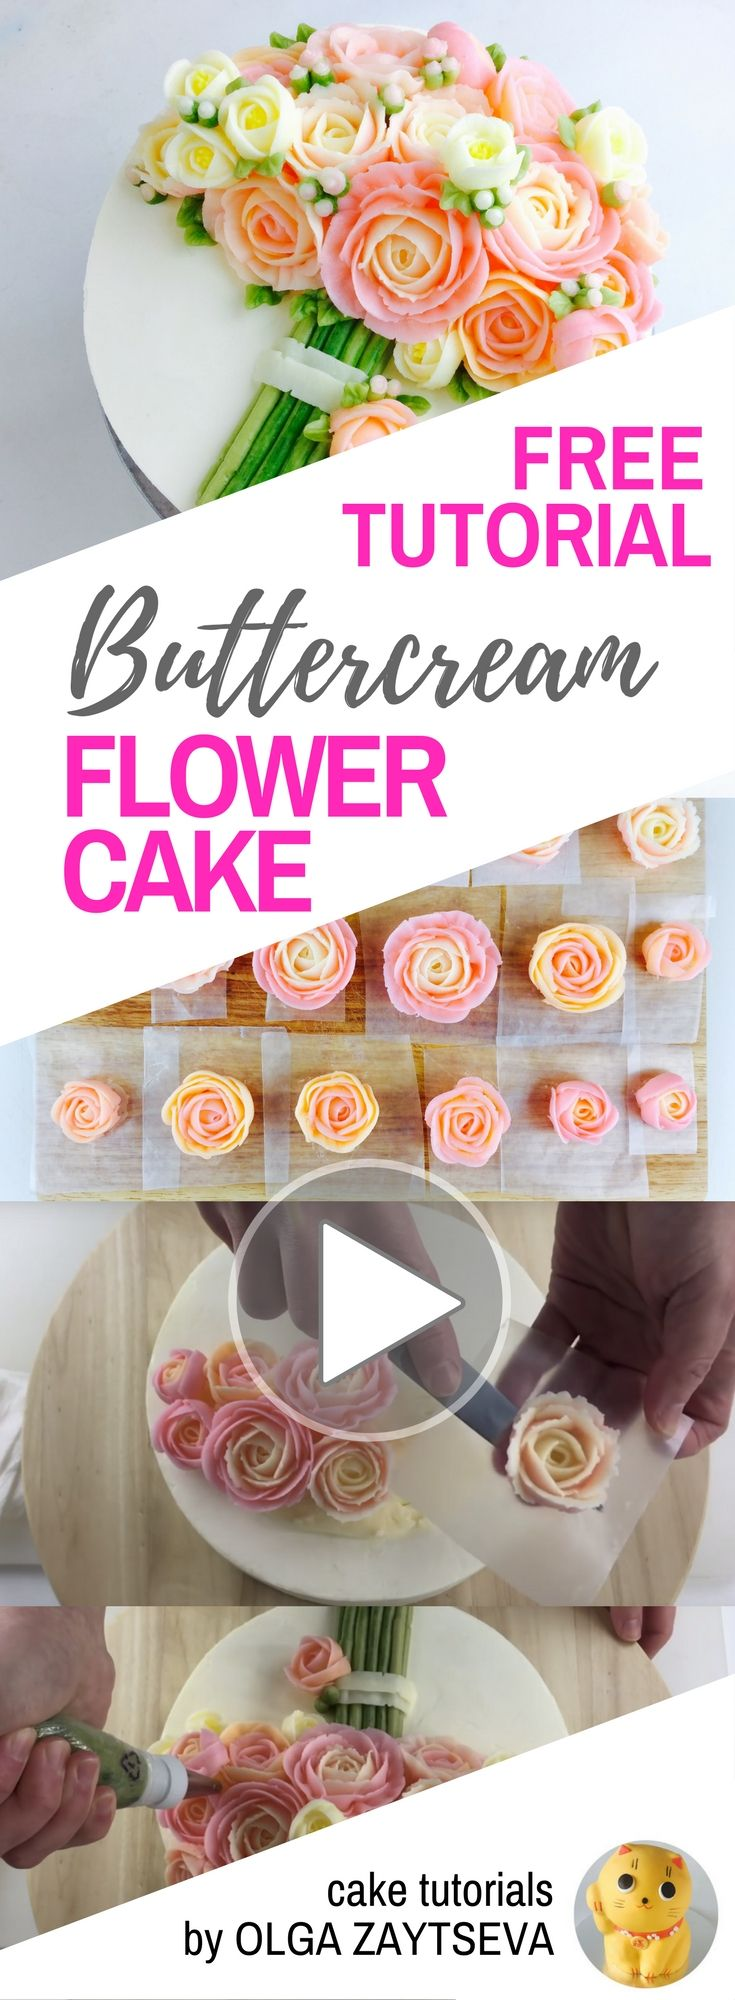 HOT CAKE TRENDS How to make Pink Roses Buttercream bouquet cake - Cake decorating tutorial by Olga Zaytseva. Learn how to pipe tiny jasmine, roses and buds and assemble a buttercream flower bouquet cake in variety of pink shades.